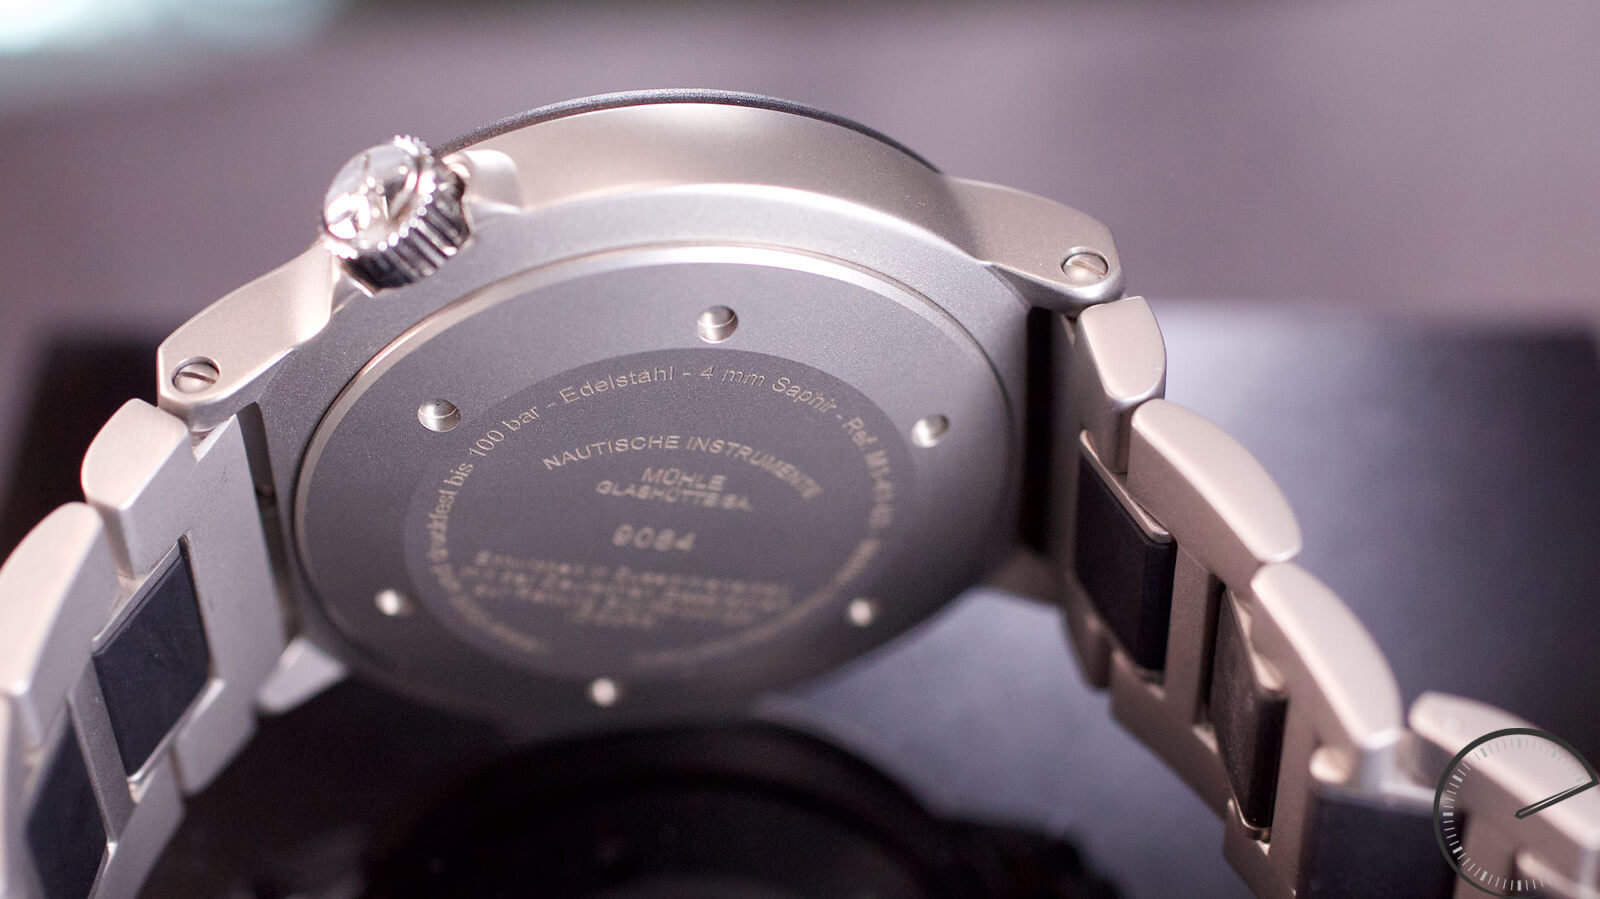 Muhle-Glashutte S.A.R Rescue Timer